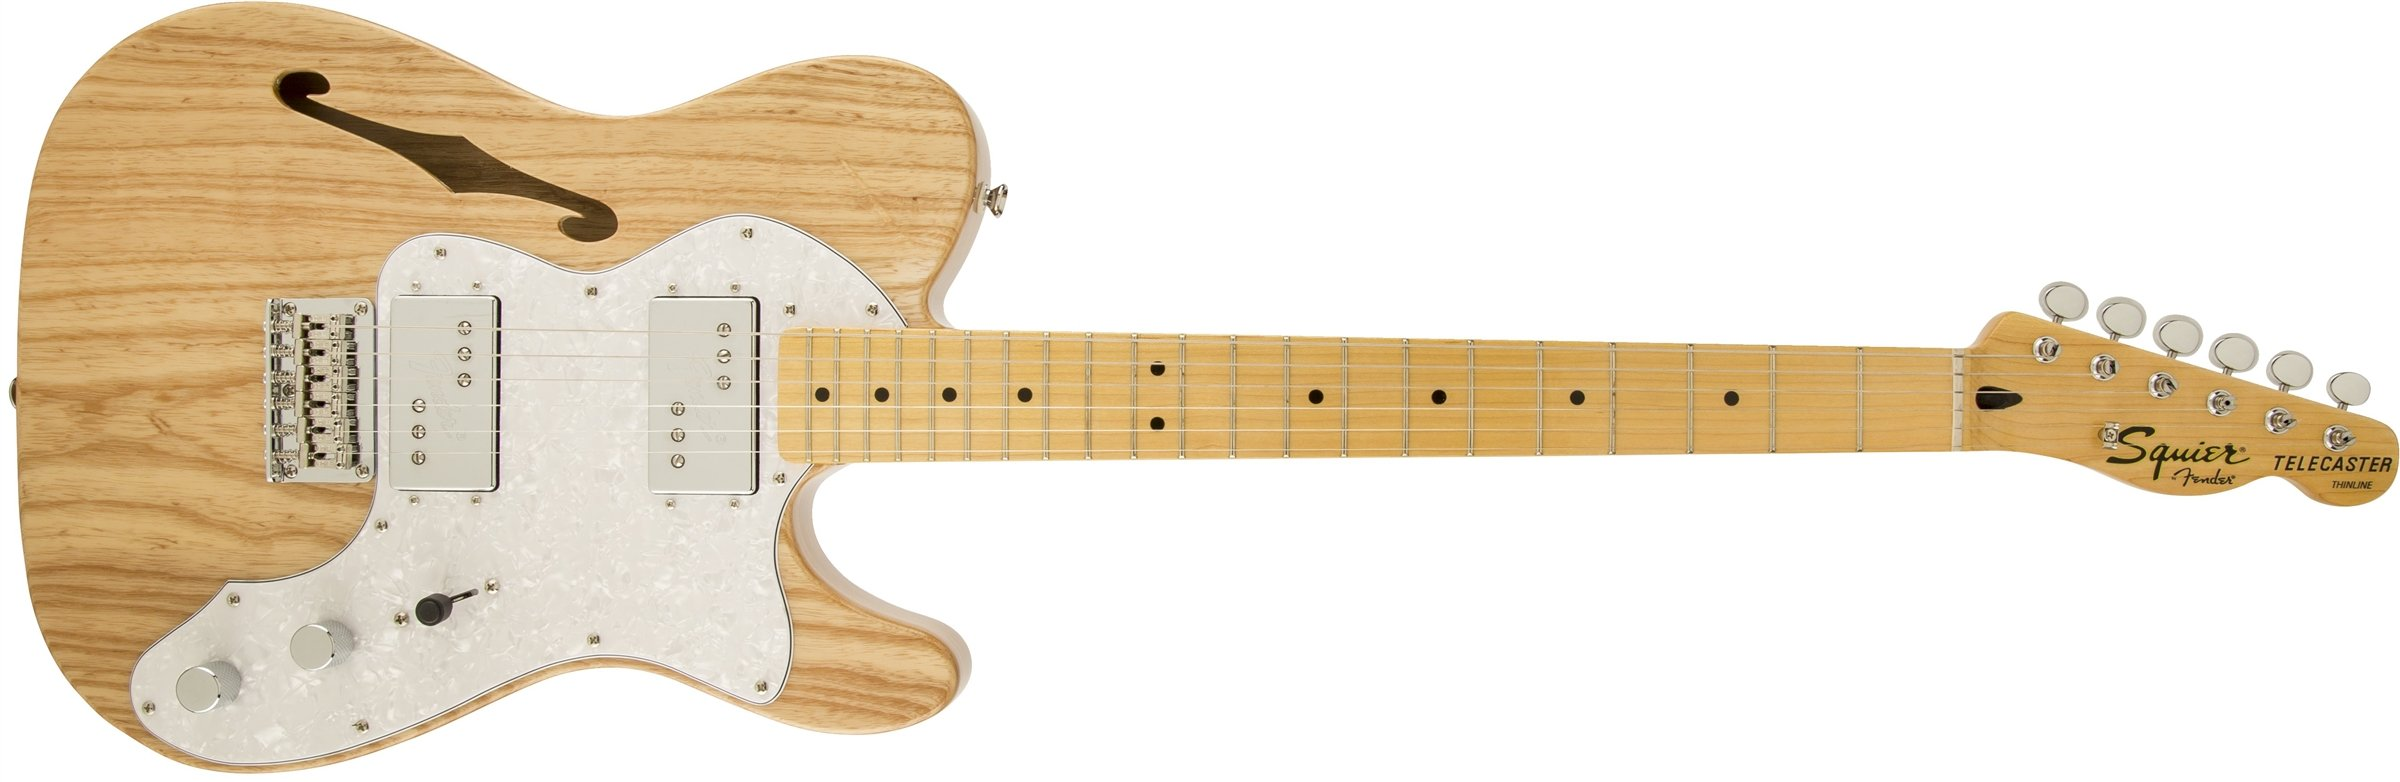 Squier by Fender 301280521  Vintage Modified '72 Telecaster Electric Guitar Thinline - Natural - Maple Fingerboard